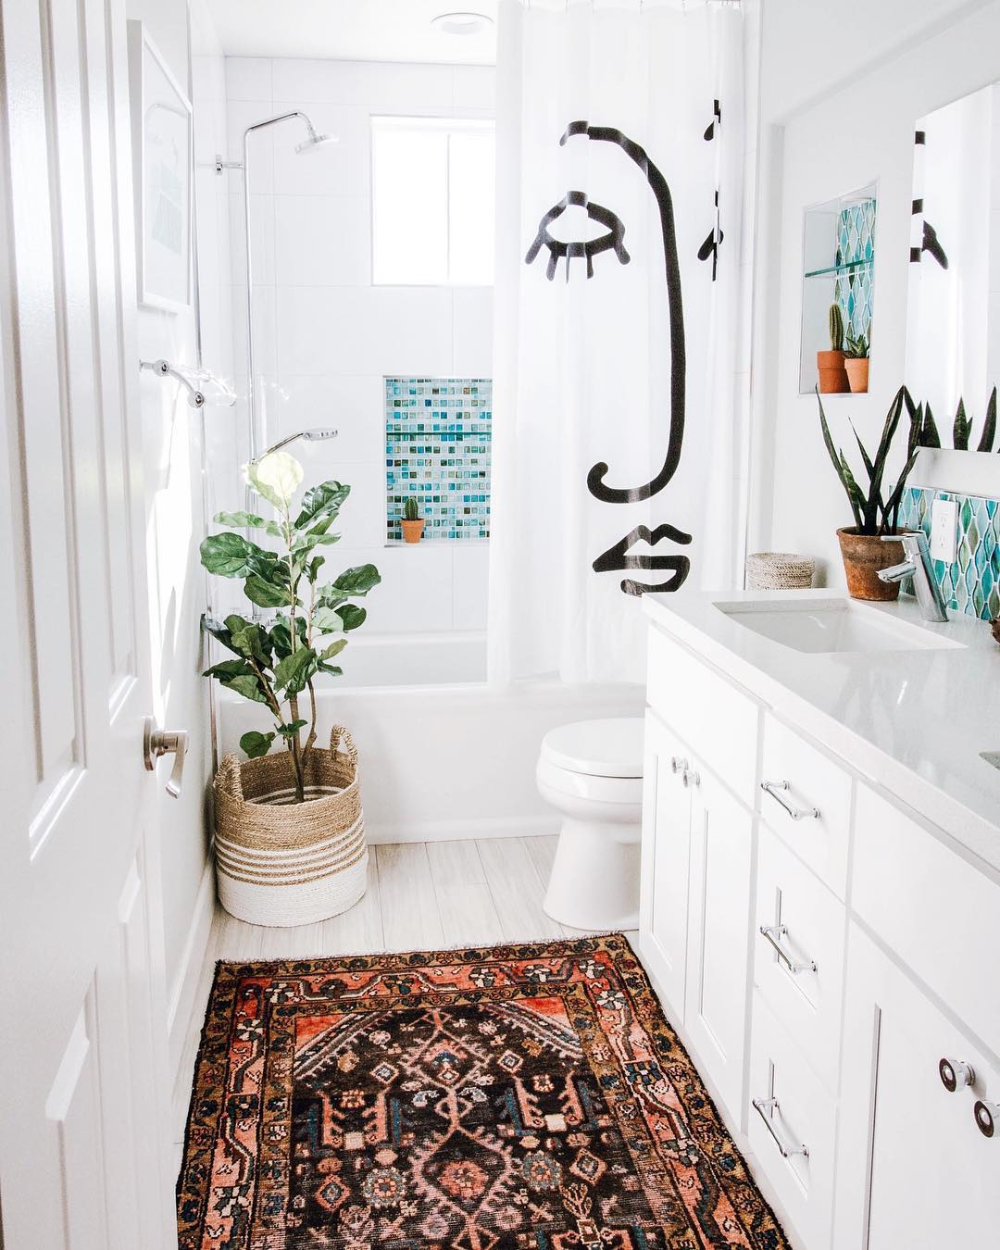 Ohhhh Baby It S Friyay I Prolly Had The Worst Night S Sleep Last Night Poor Lil N Still Coughing So Much In 2020 Zen Bathroom Trending Decor Unique Shower Curtain